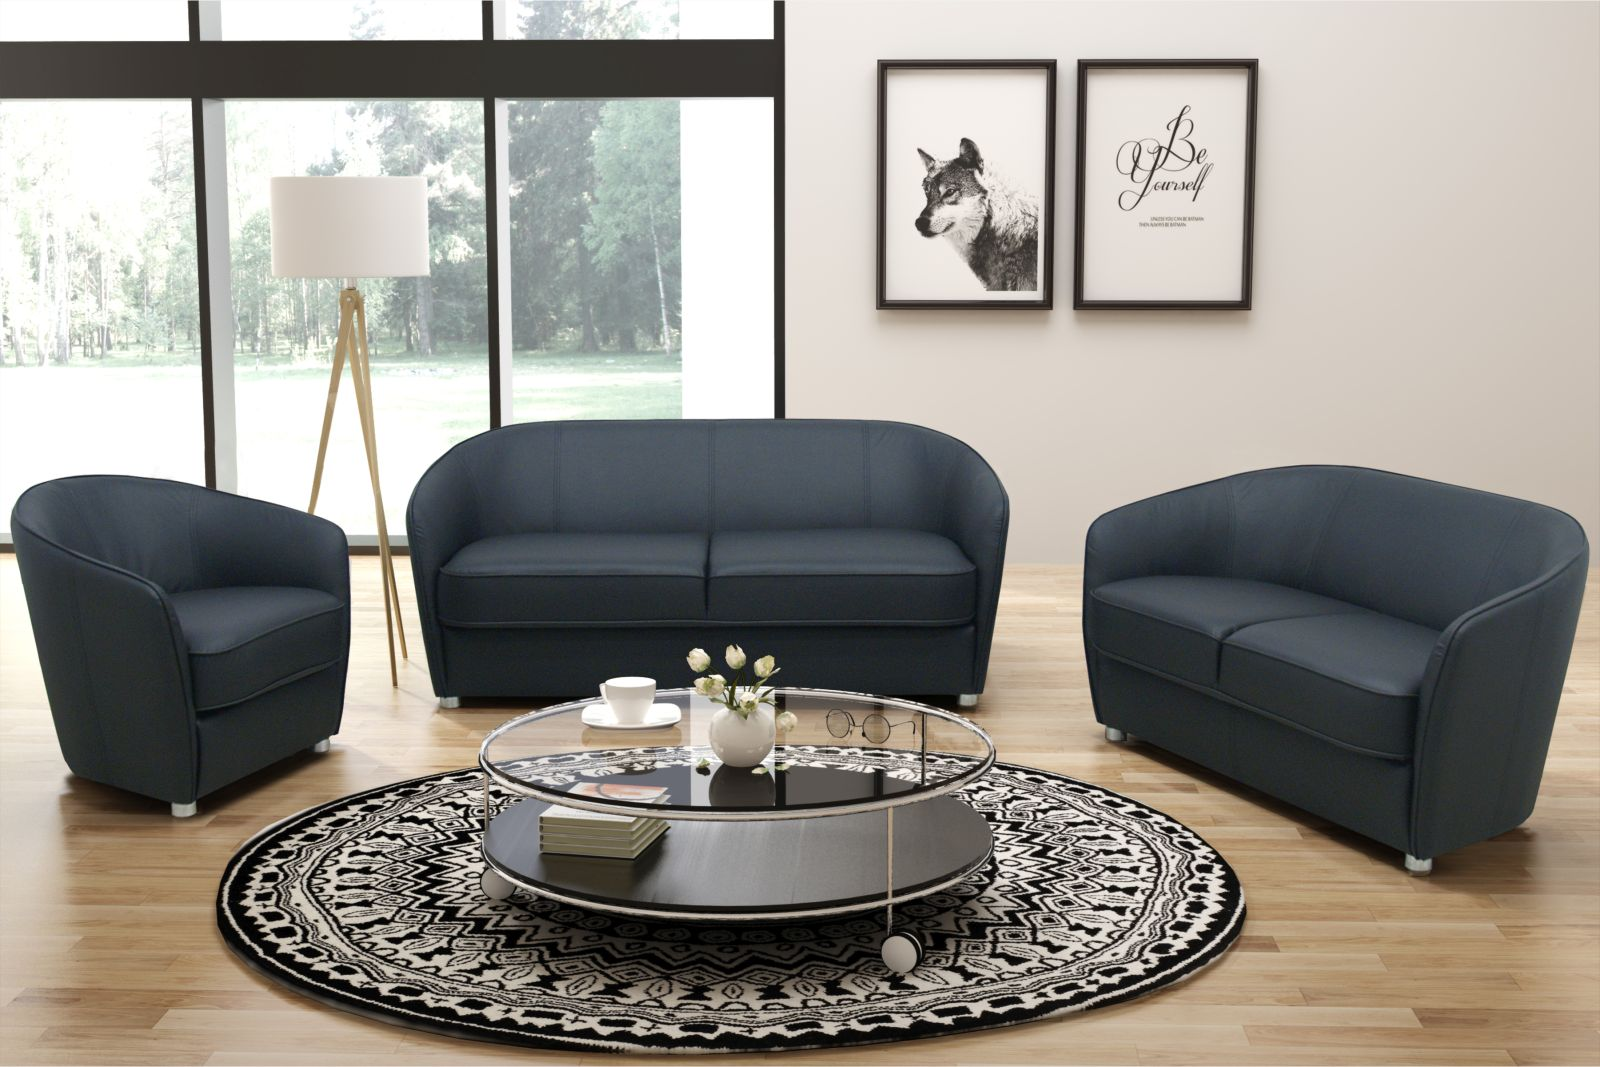 3 teilige moderne couchgarnitur 2 sitzer 3 sitzer sofa. Black Bedroom Furniture Sets. Home Design Ideas